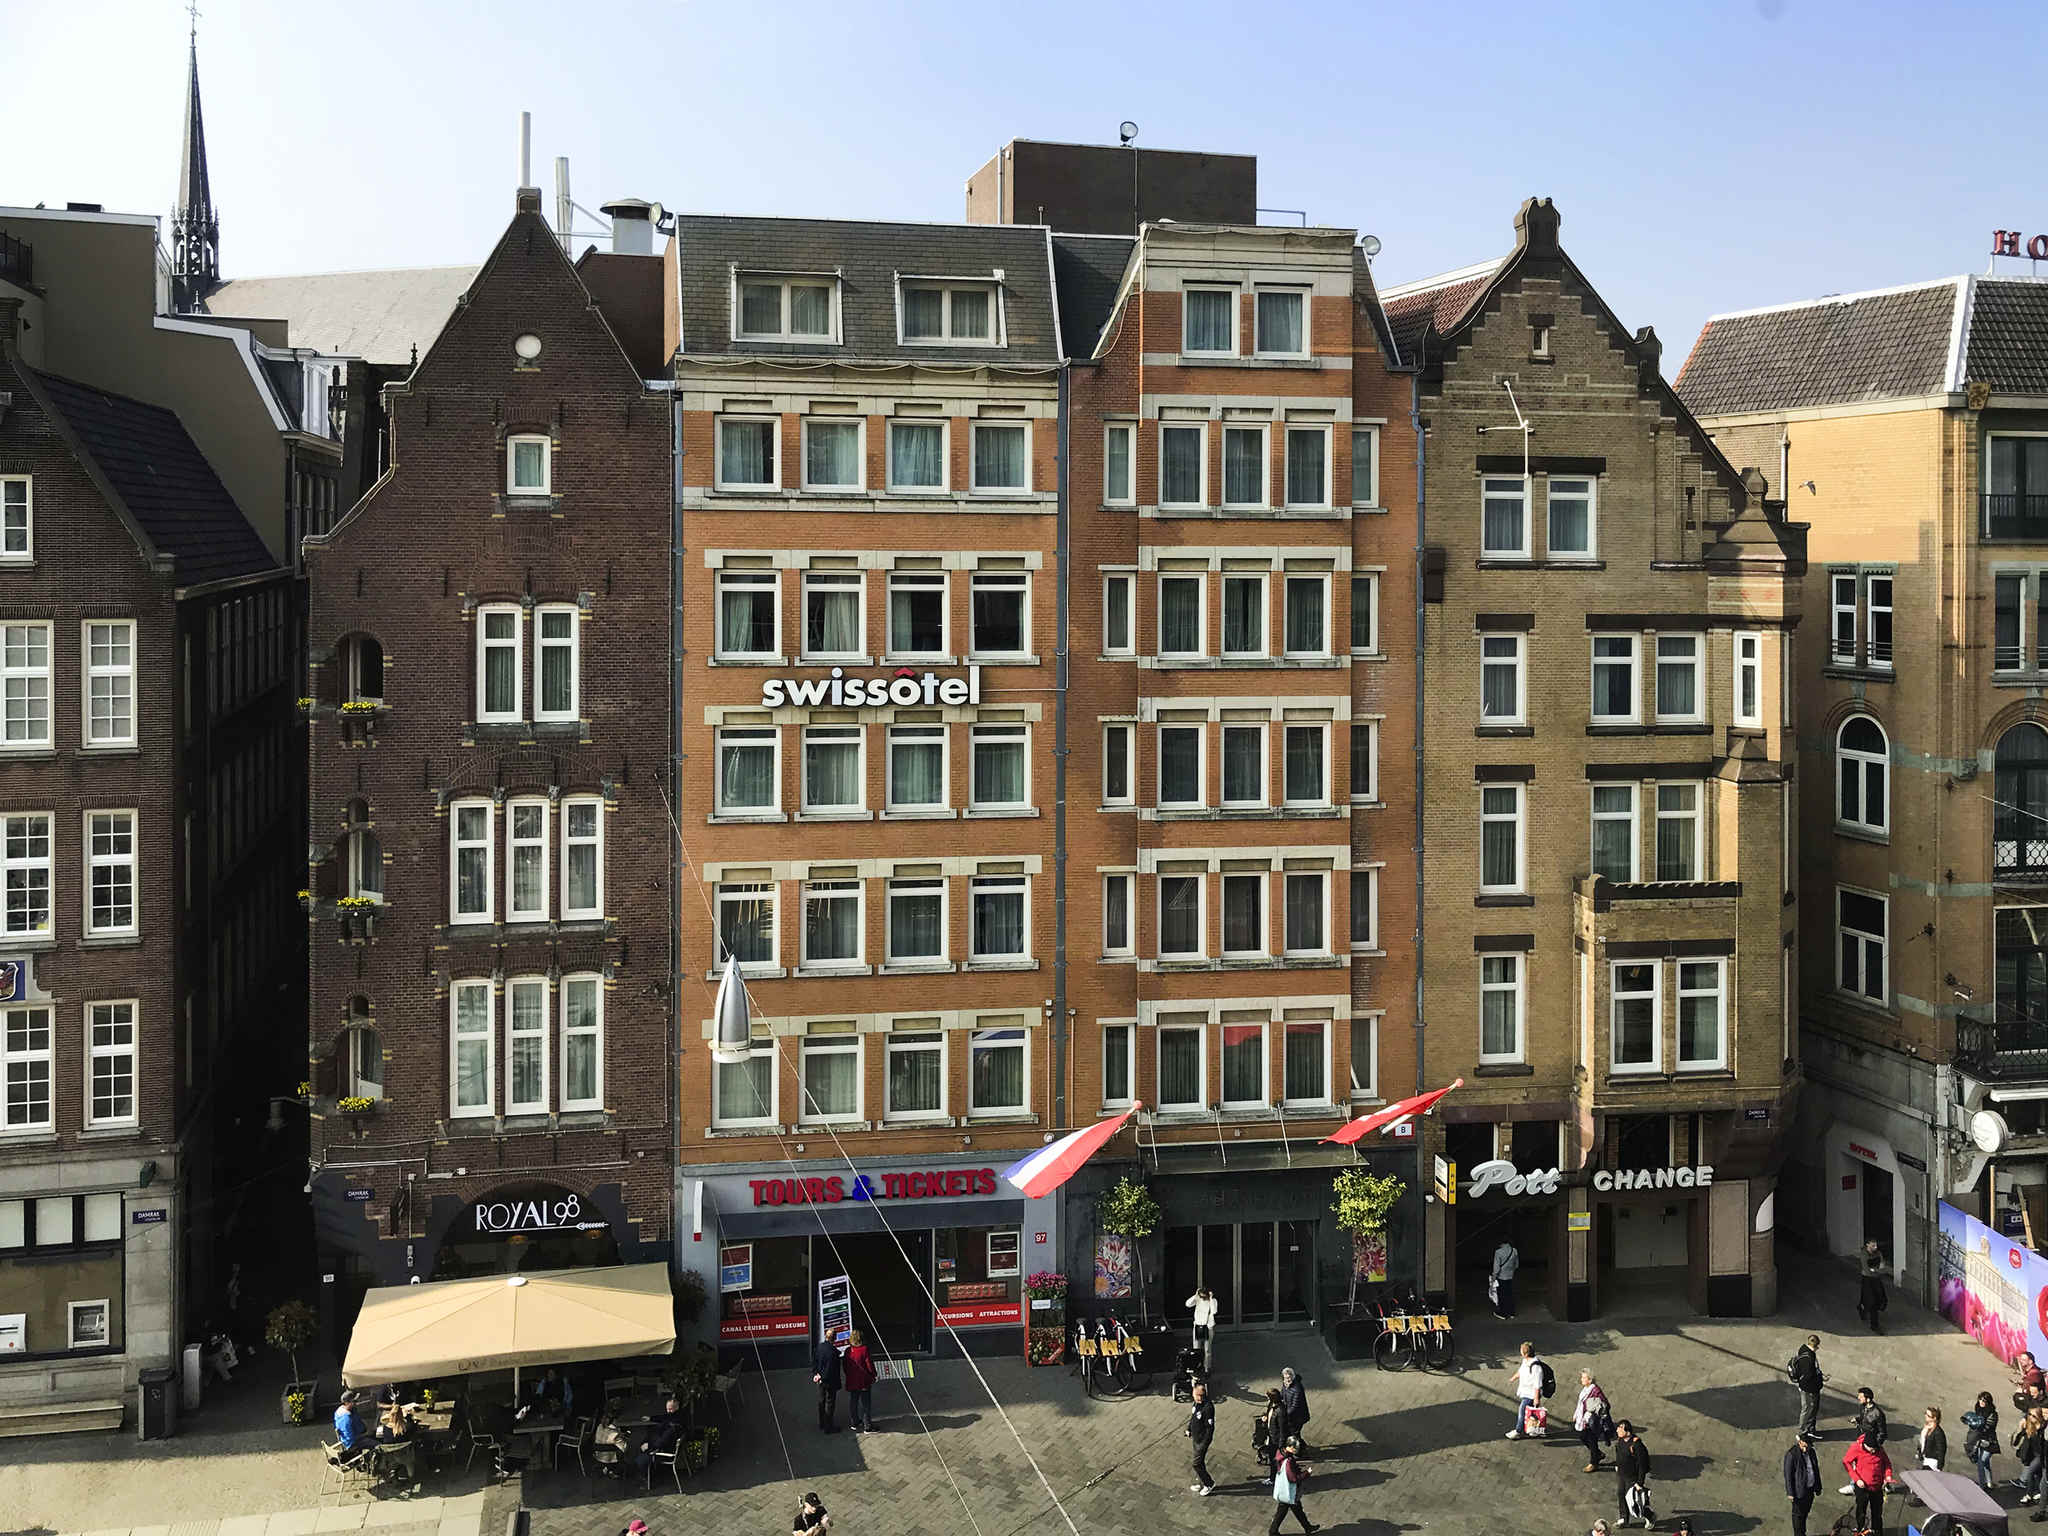 Luxury hotel amsterdam centre swissotel near dam square for Amsterdam hotel